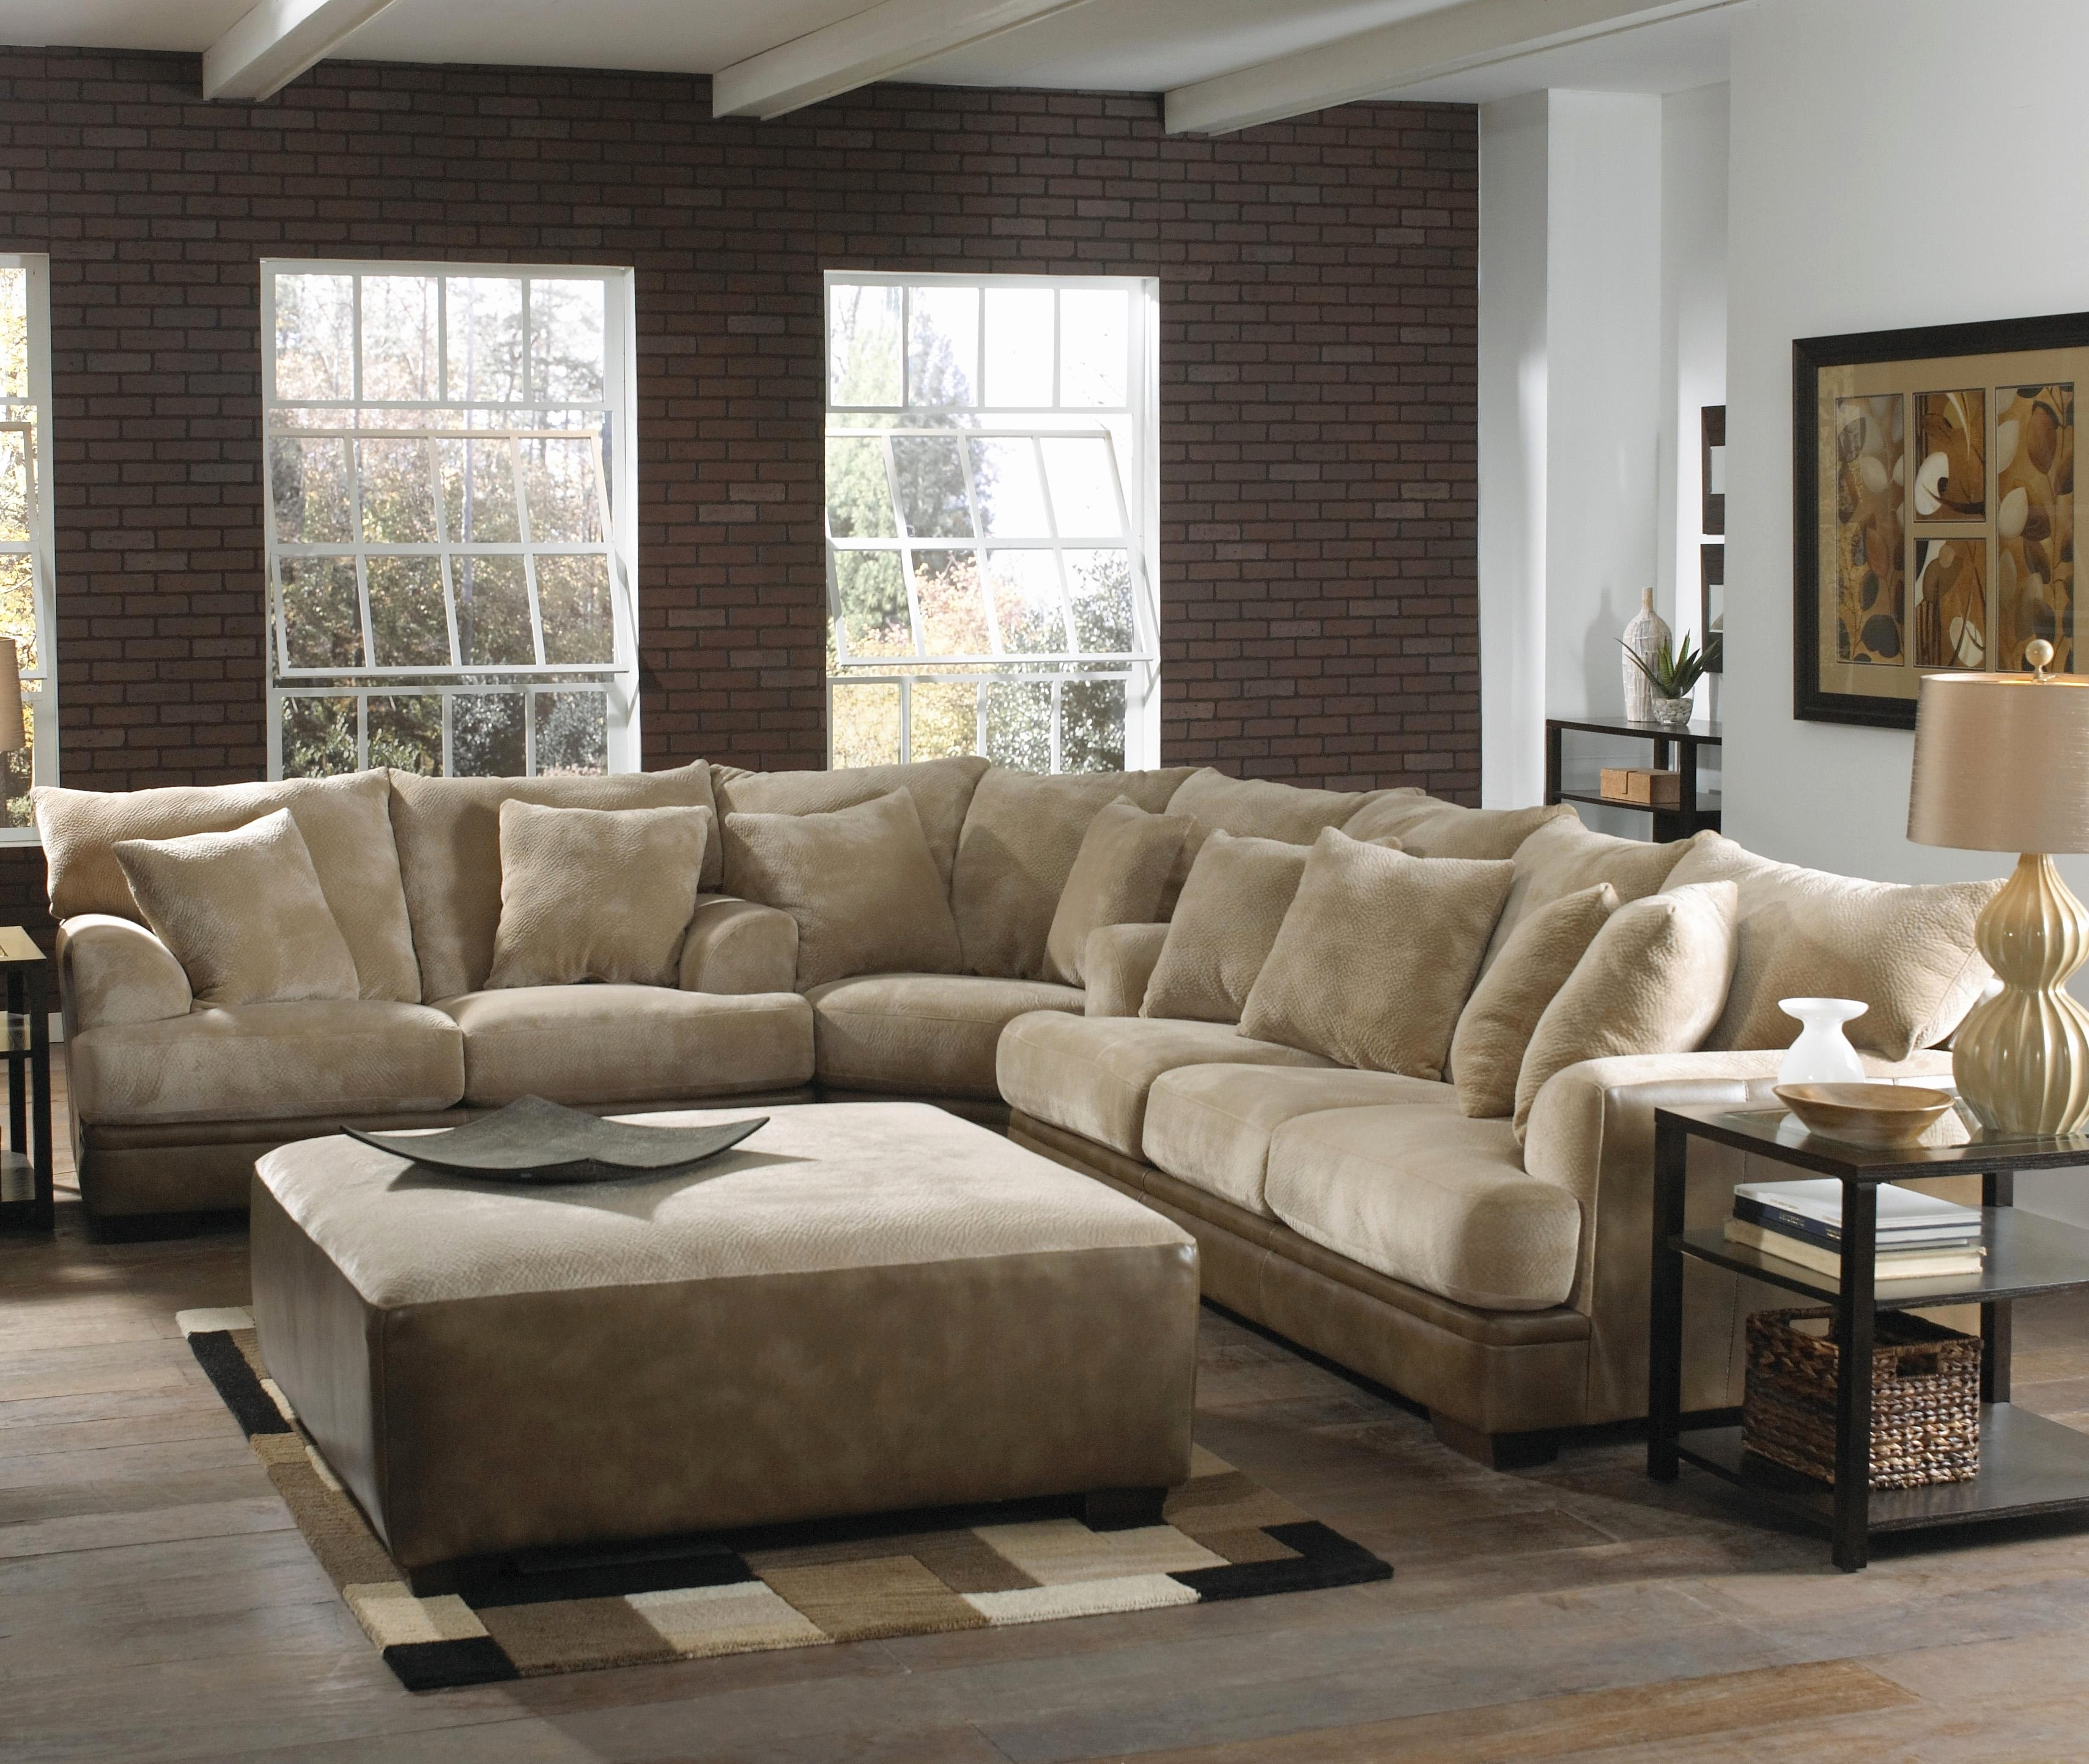 Best And Newest Wide Sectional Sofas In Fresh Sectional Sofa With Extra Wide Chaise 2018 – Couches Ideas (Gallery 11 of 20)